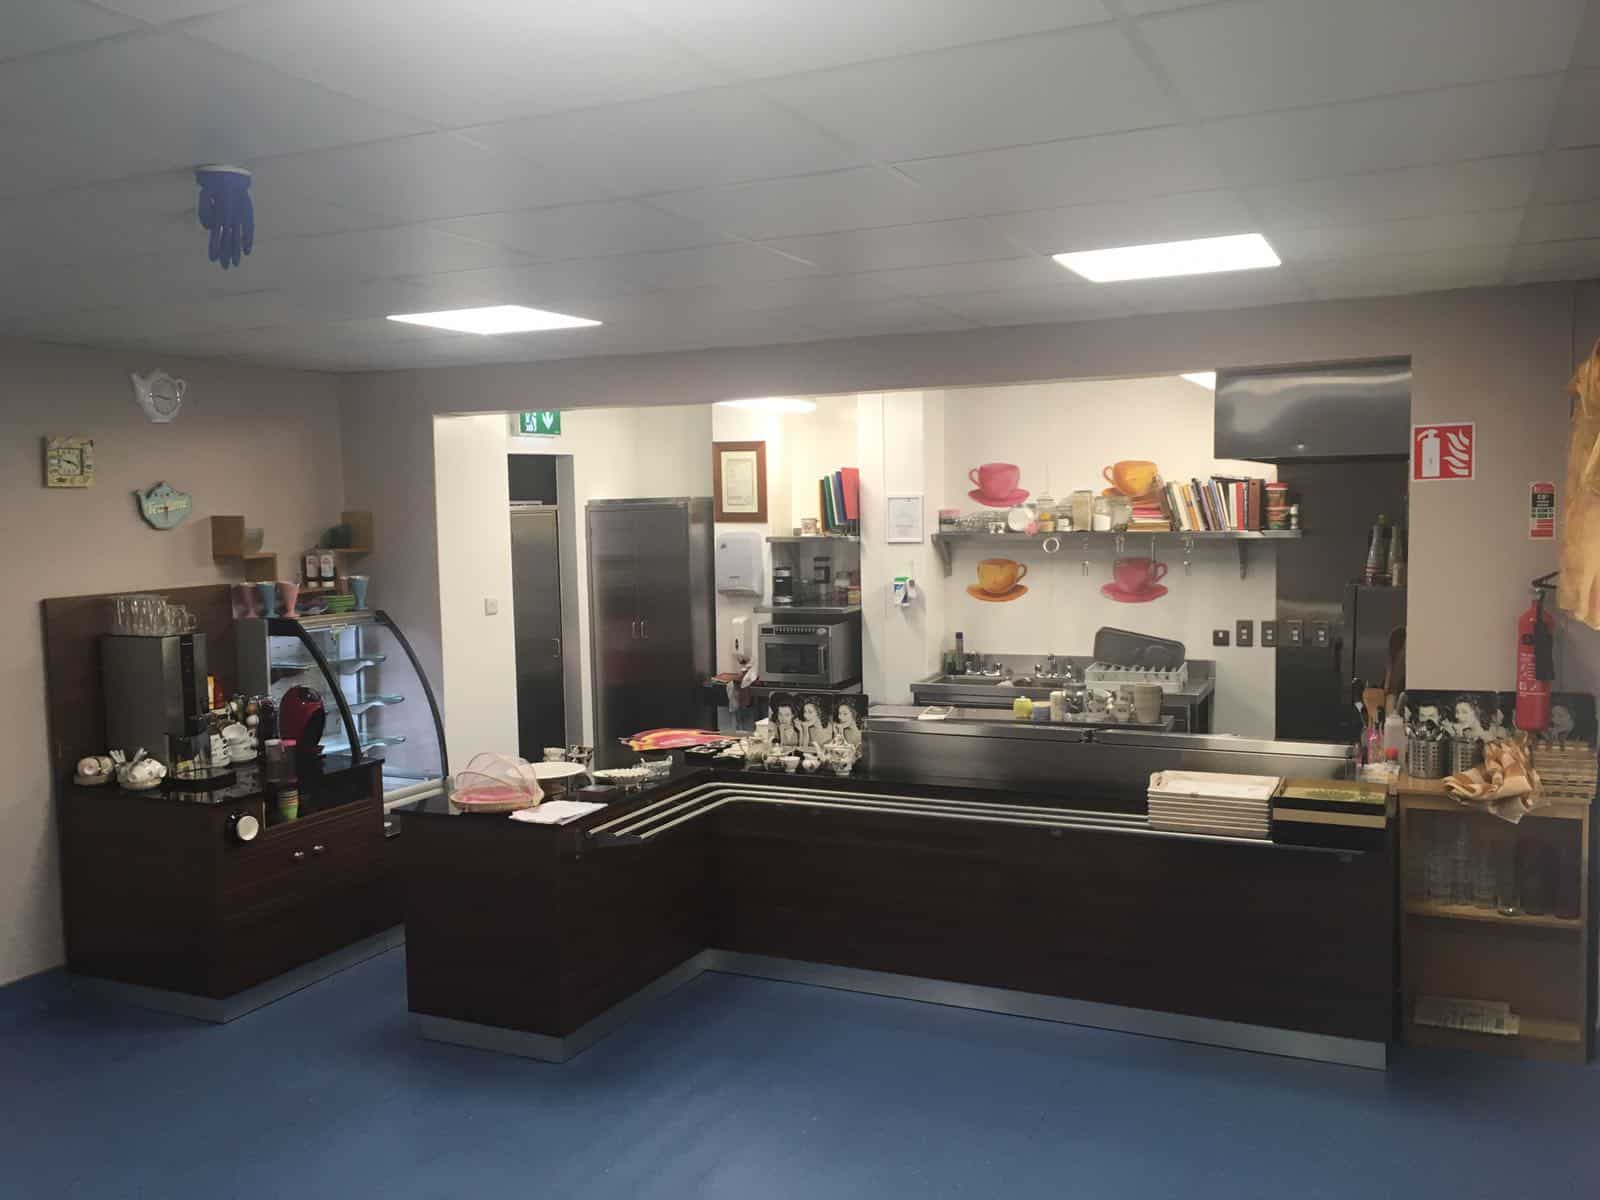 Martin Food Equipment 04a926c2-b377-4b7c-95a1-e6765f2f1e29 Staff Canteen kitchen installed at Monaghan Garda Station News